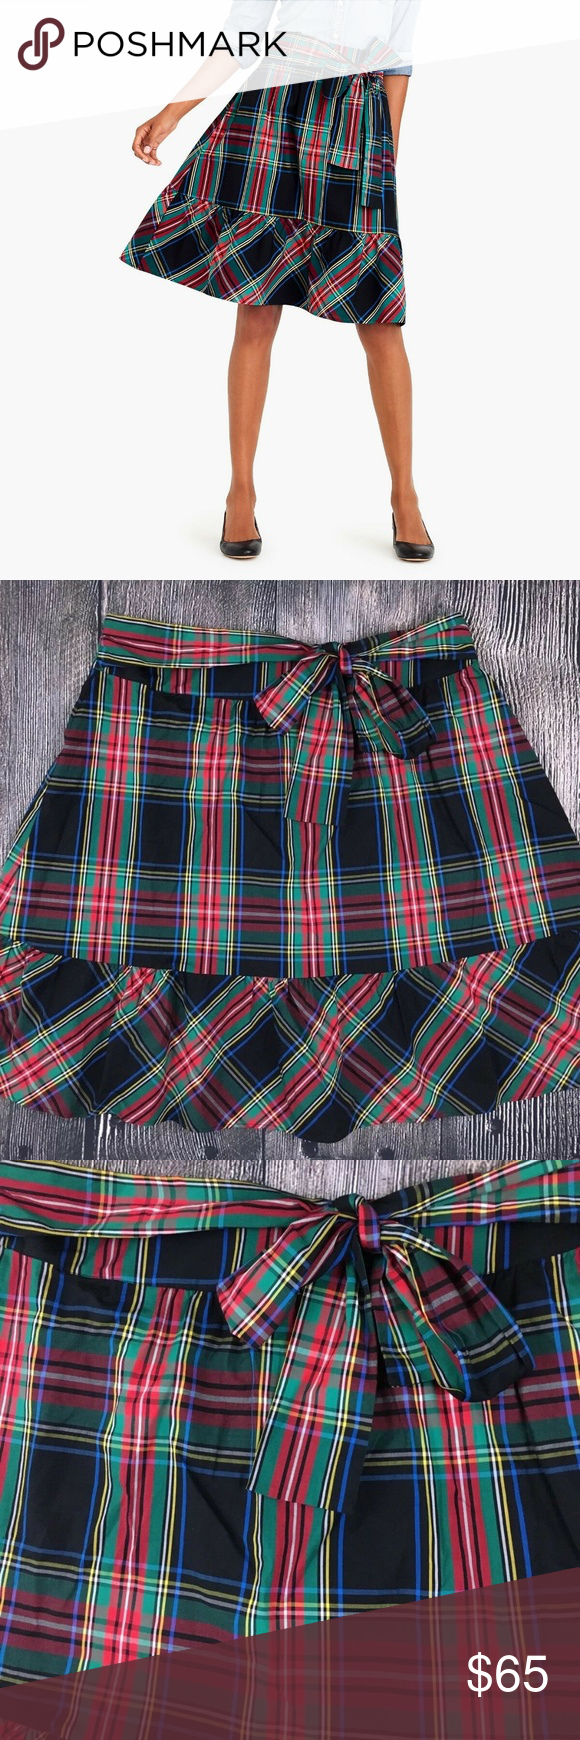 greatvarieties special discount of exquisite style J. Crew Big Bow Midi Skirt Size 18 Plaid Sold Out Listed is ...